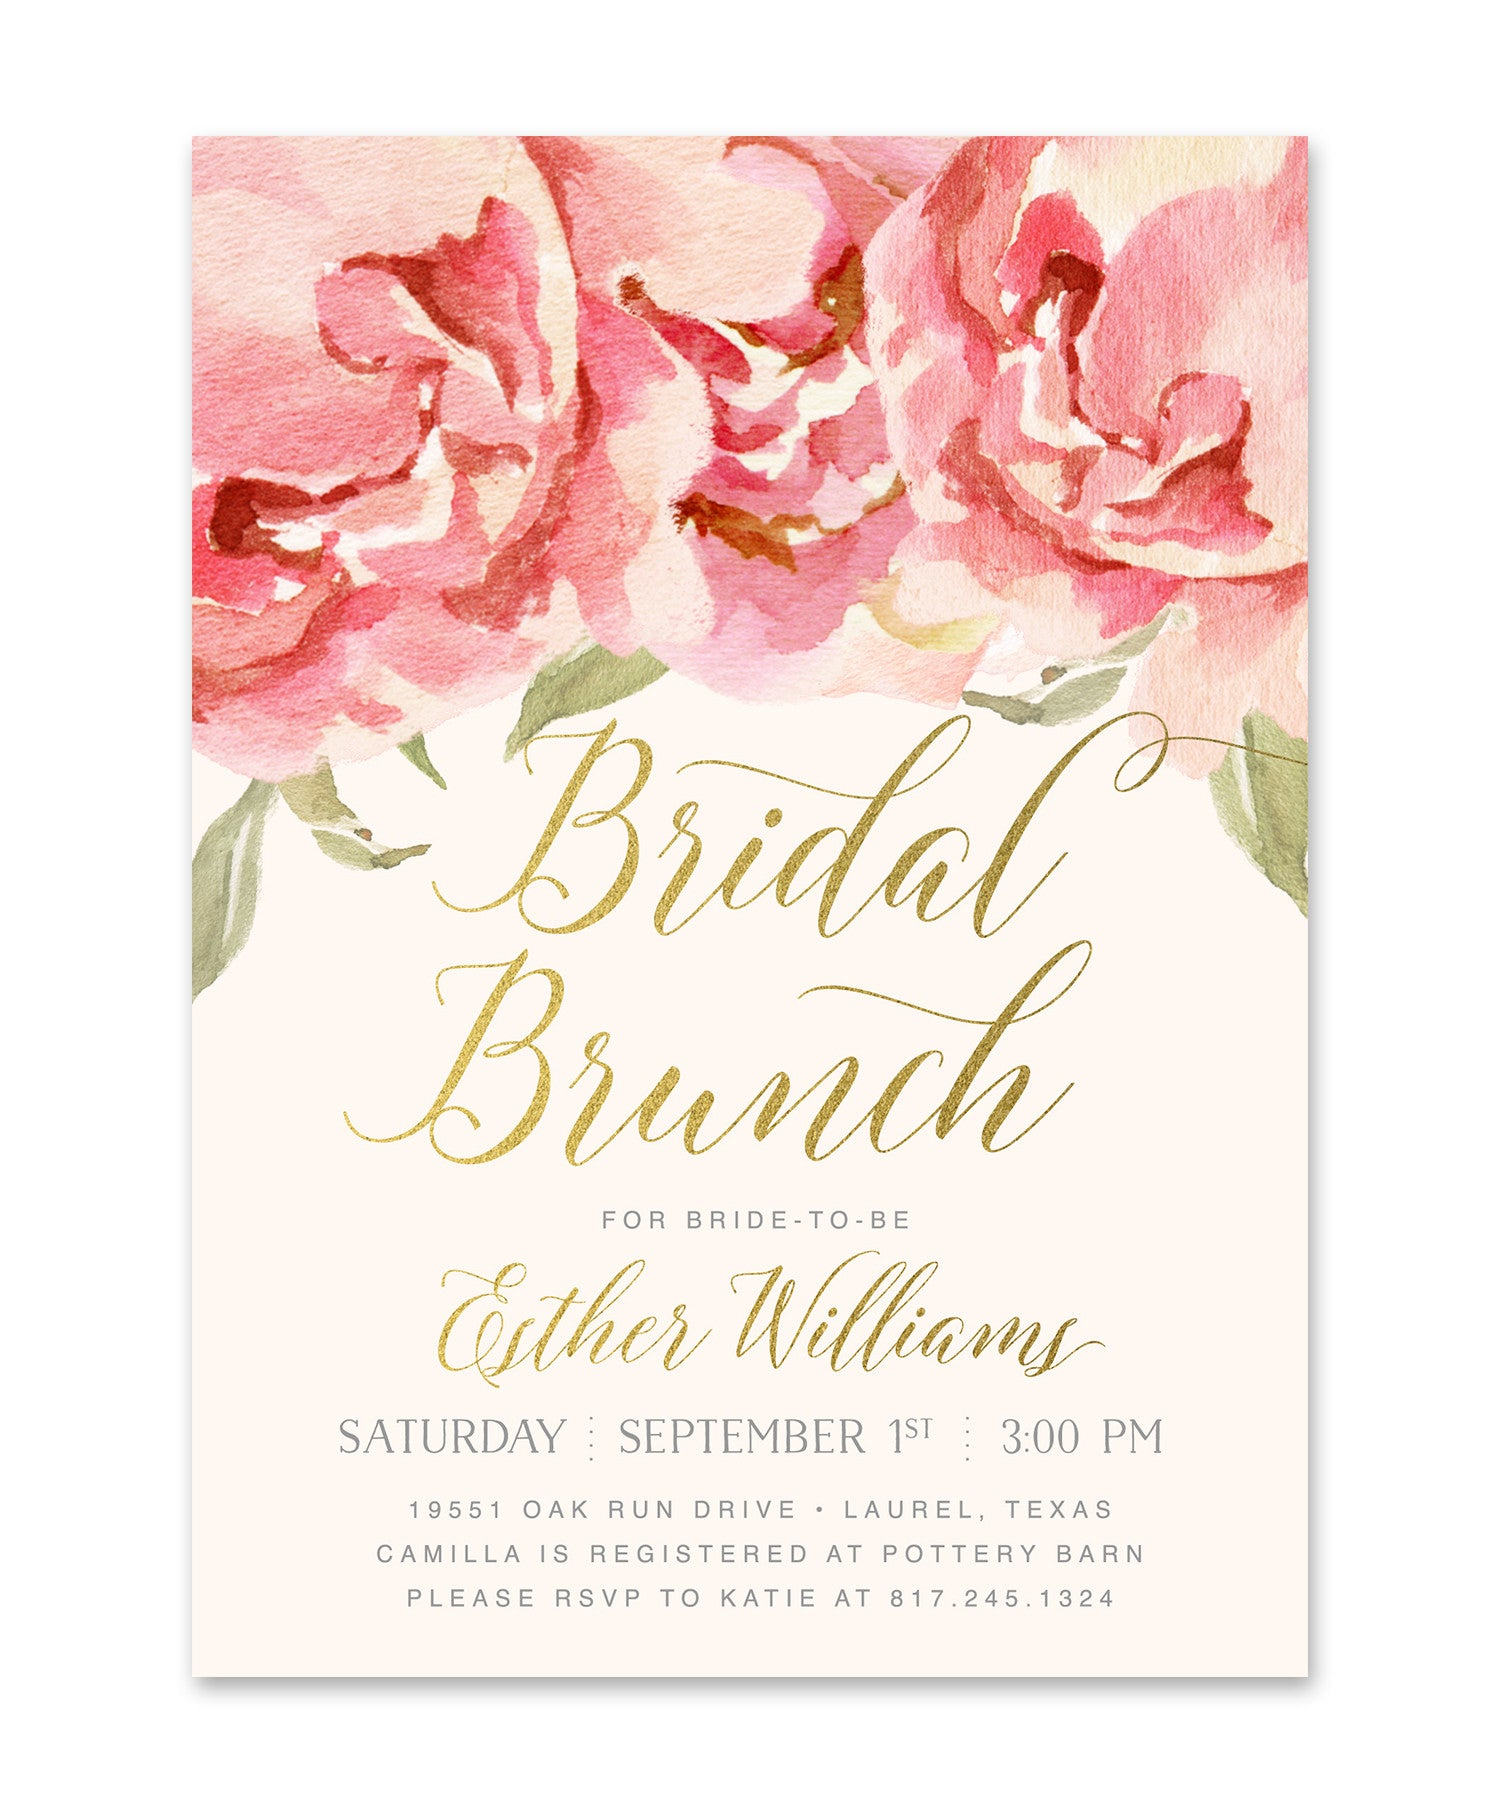 Everly bridal shower brunch invitation pink roses gold for Wedding brunch invitations